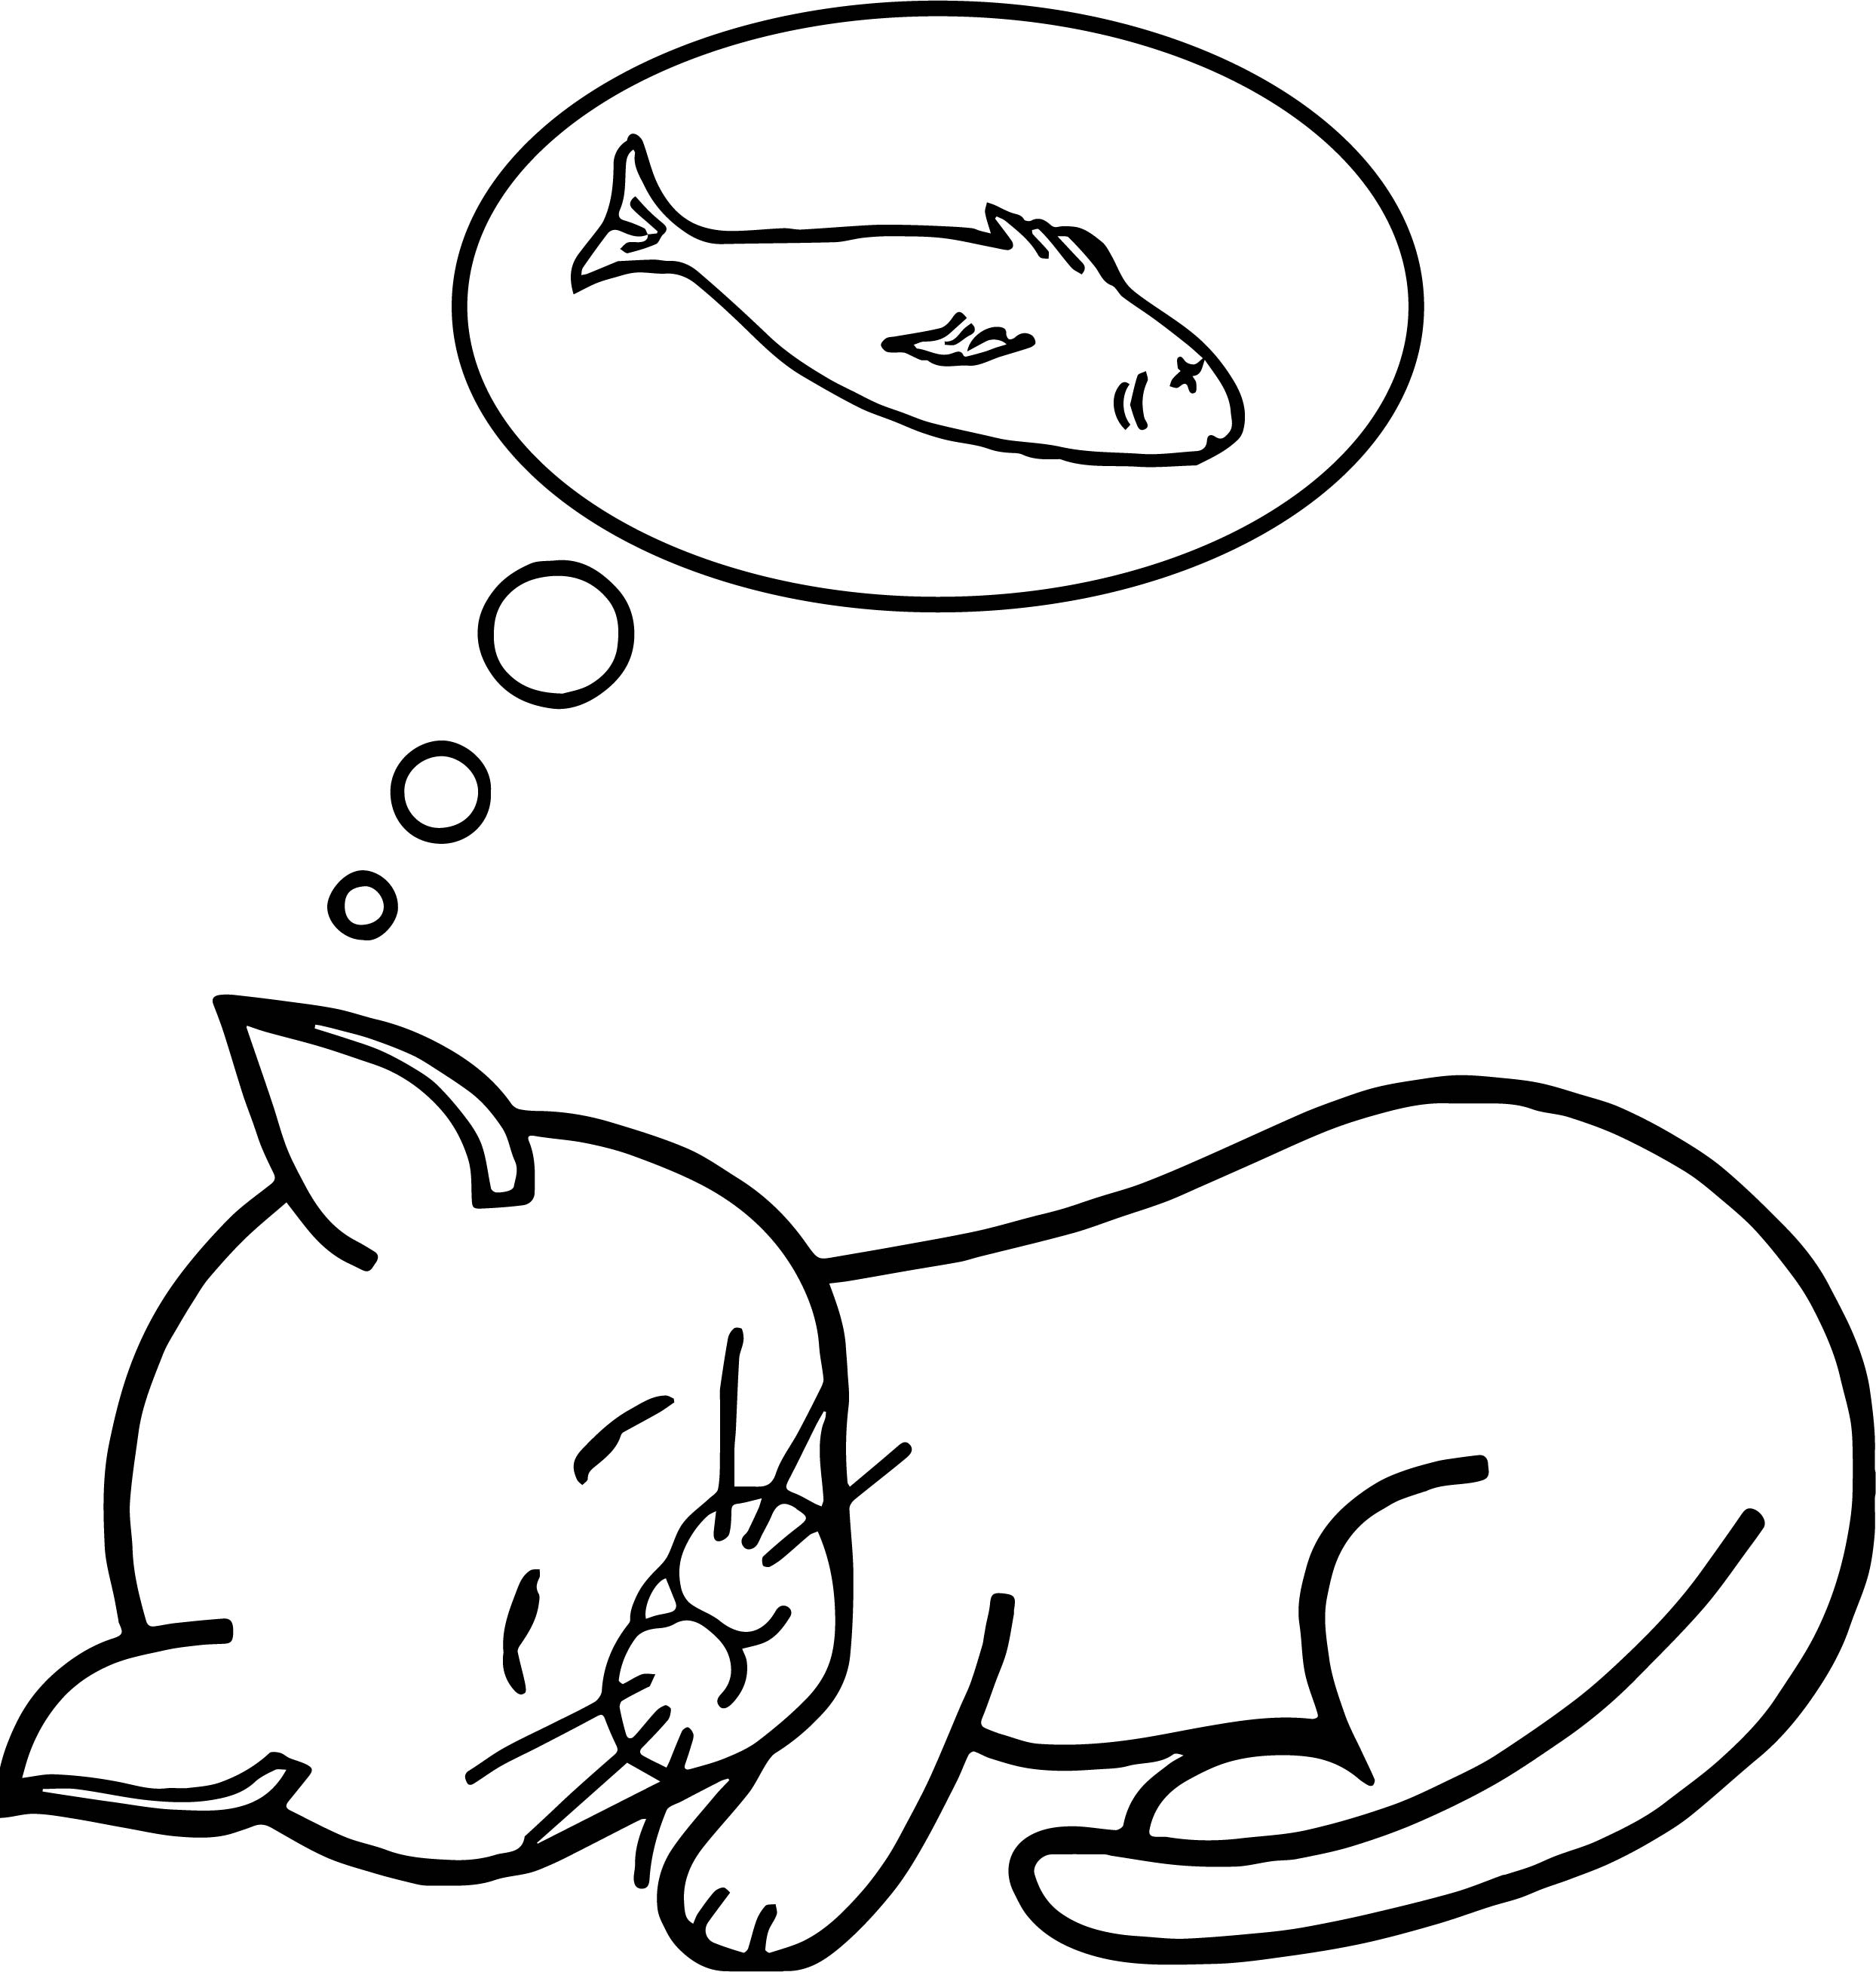 Fish Dream Cat Coloring Page